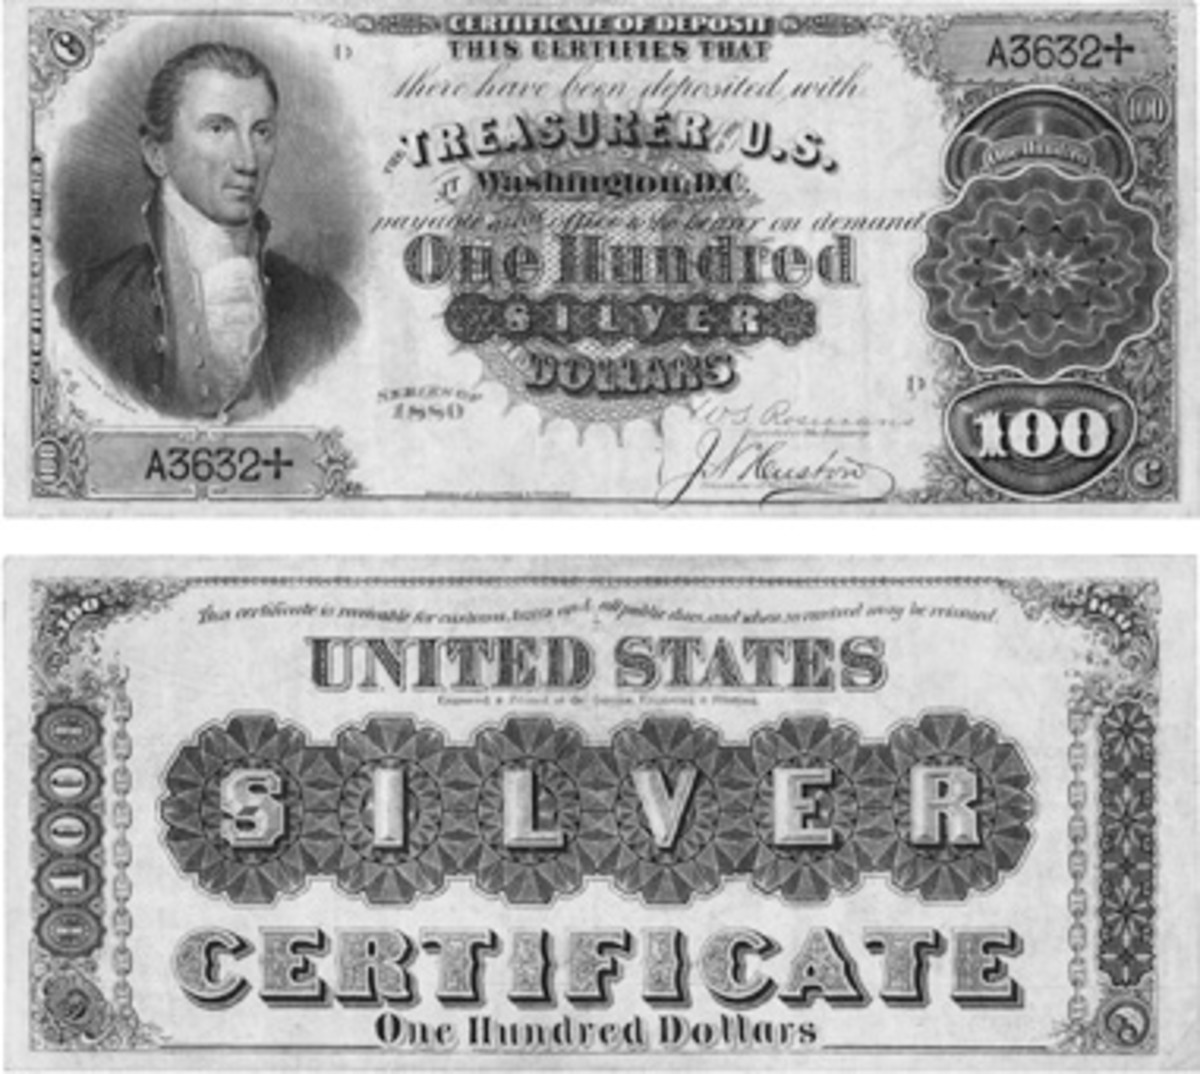 FR. 341 $100 1880 Silver Certificate PMG Very Fine 30. Sold for $87,000 in April 2018, but more recently sold for a conservative $52,800 as part of the Mike Coltrane Collection, auctioned in early November 2020. (Image courtesy of Heritage Auctions www.ha.com).